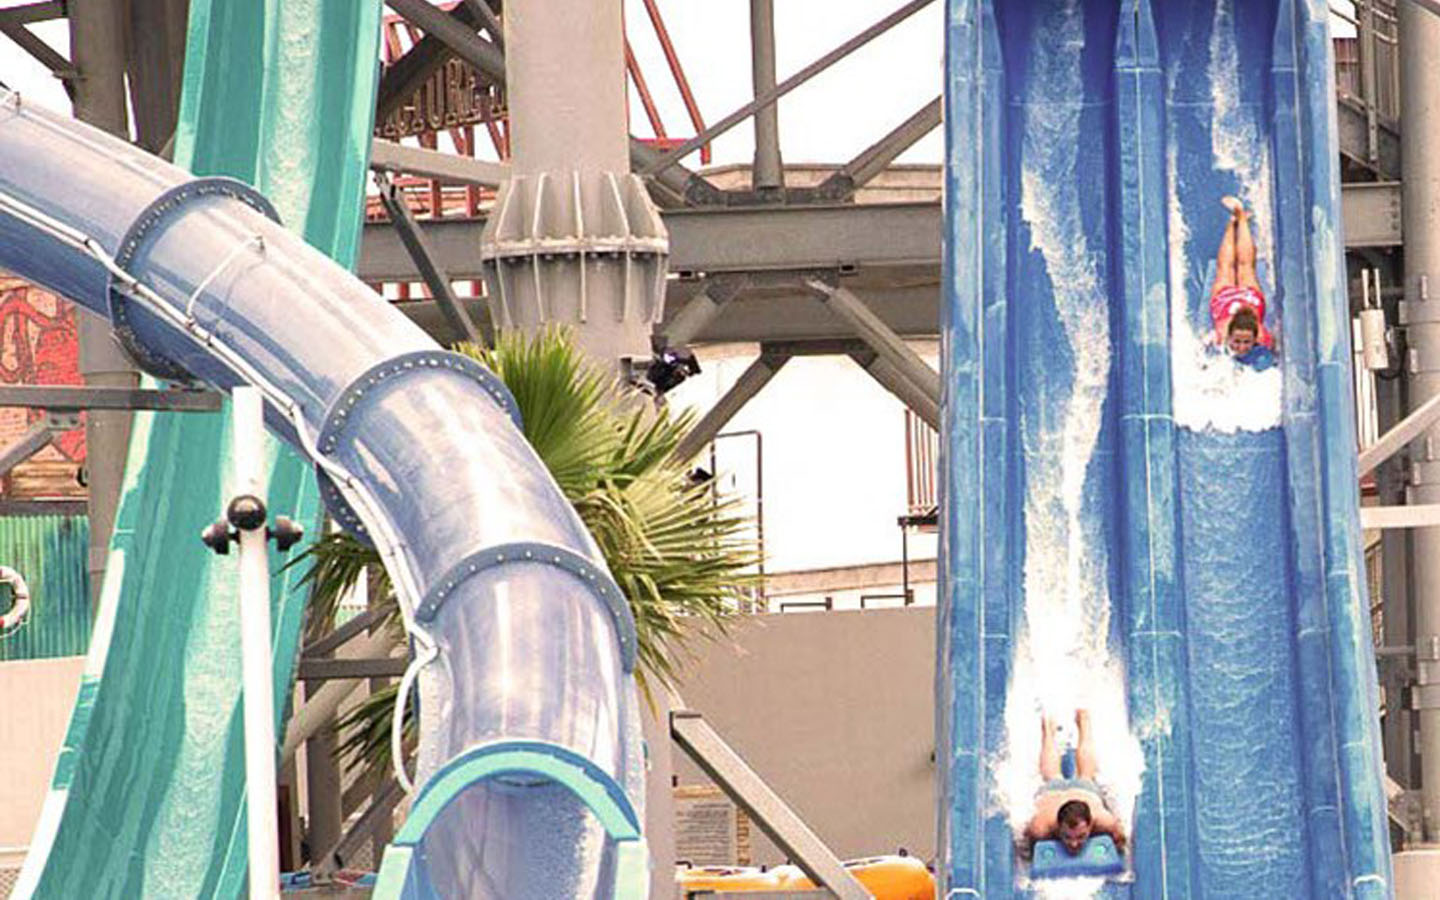 Mad racer, slide at Laguna Waterpark